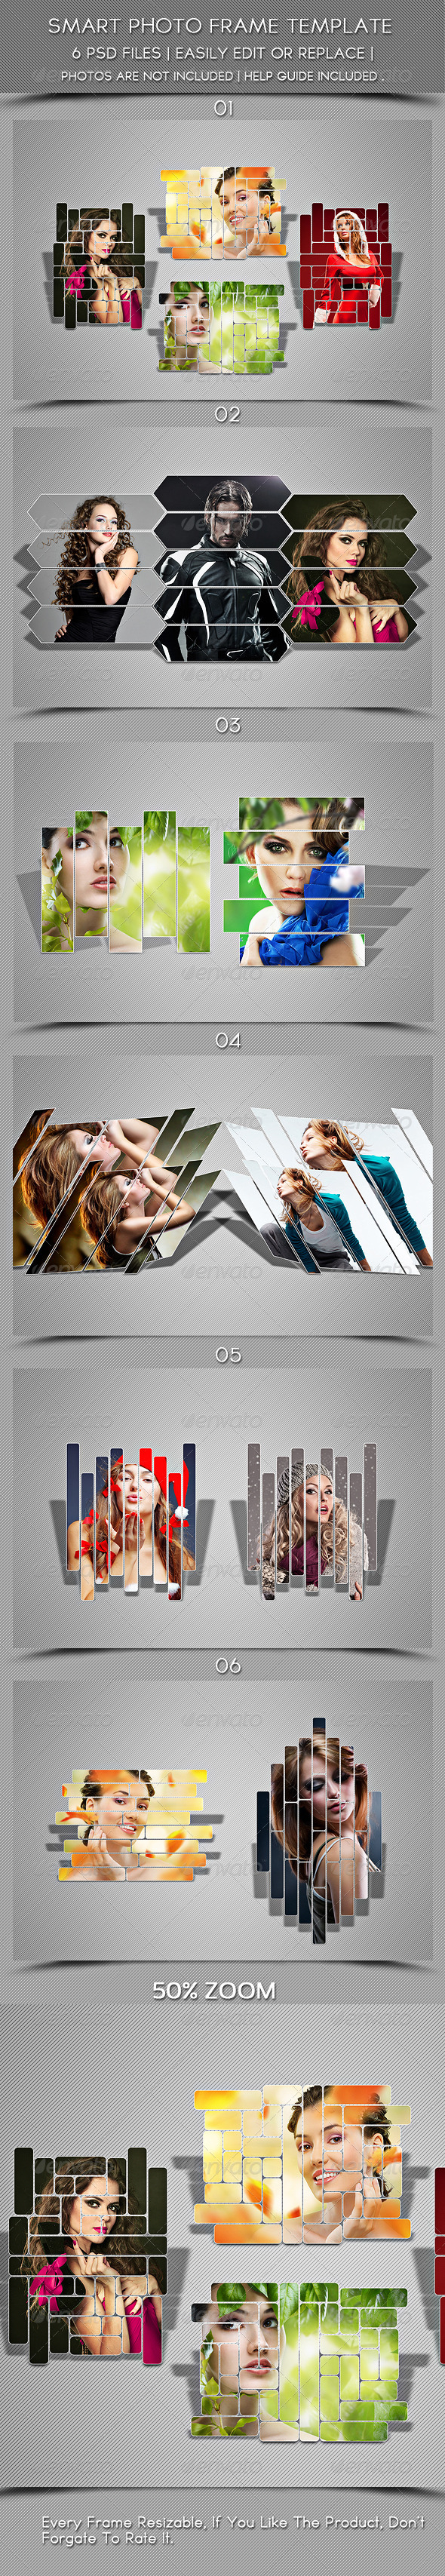 Smart Photoframe Template - Photo Templates Graphics